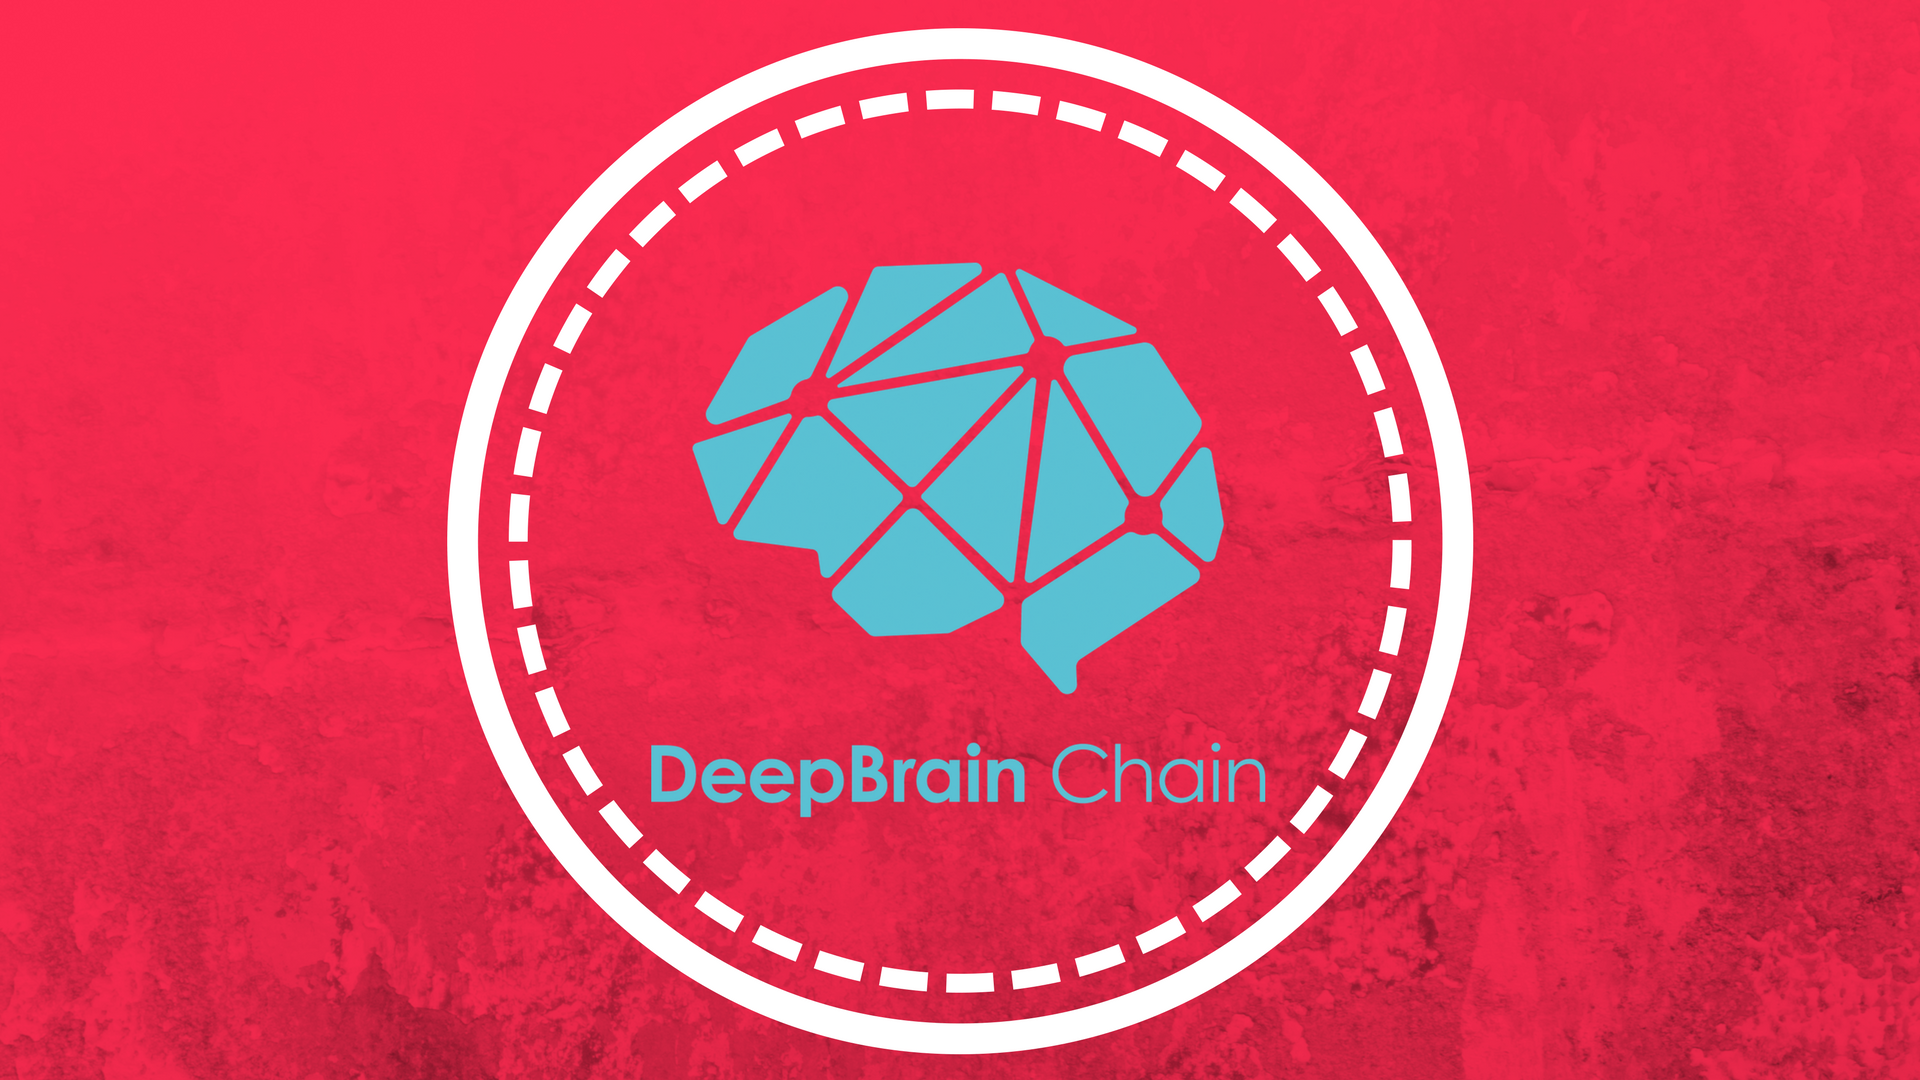 DeepBrainChain low market cap undervalued cryptocurrency